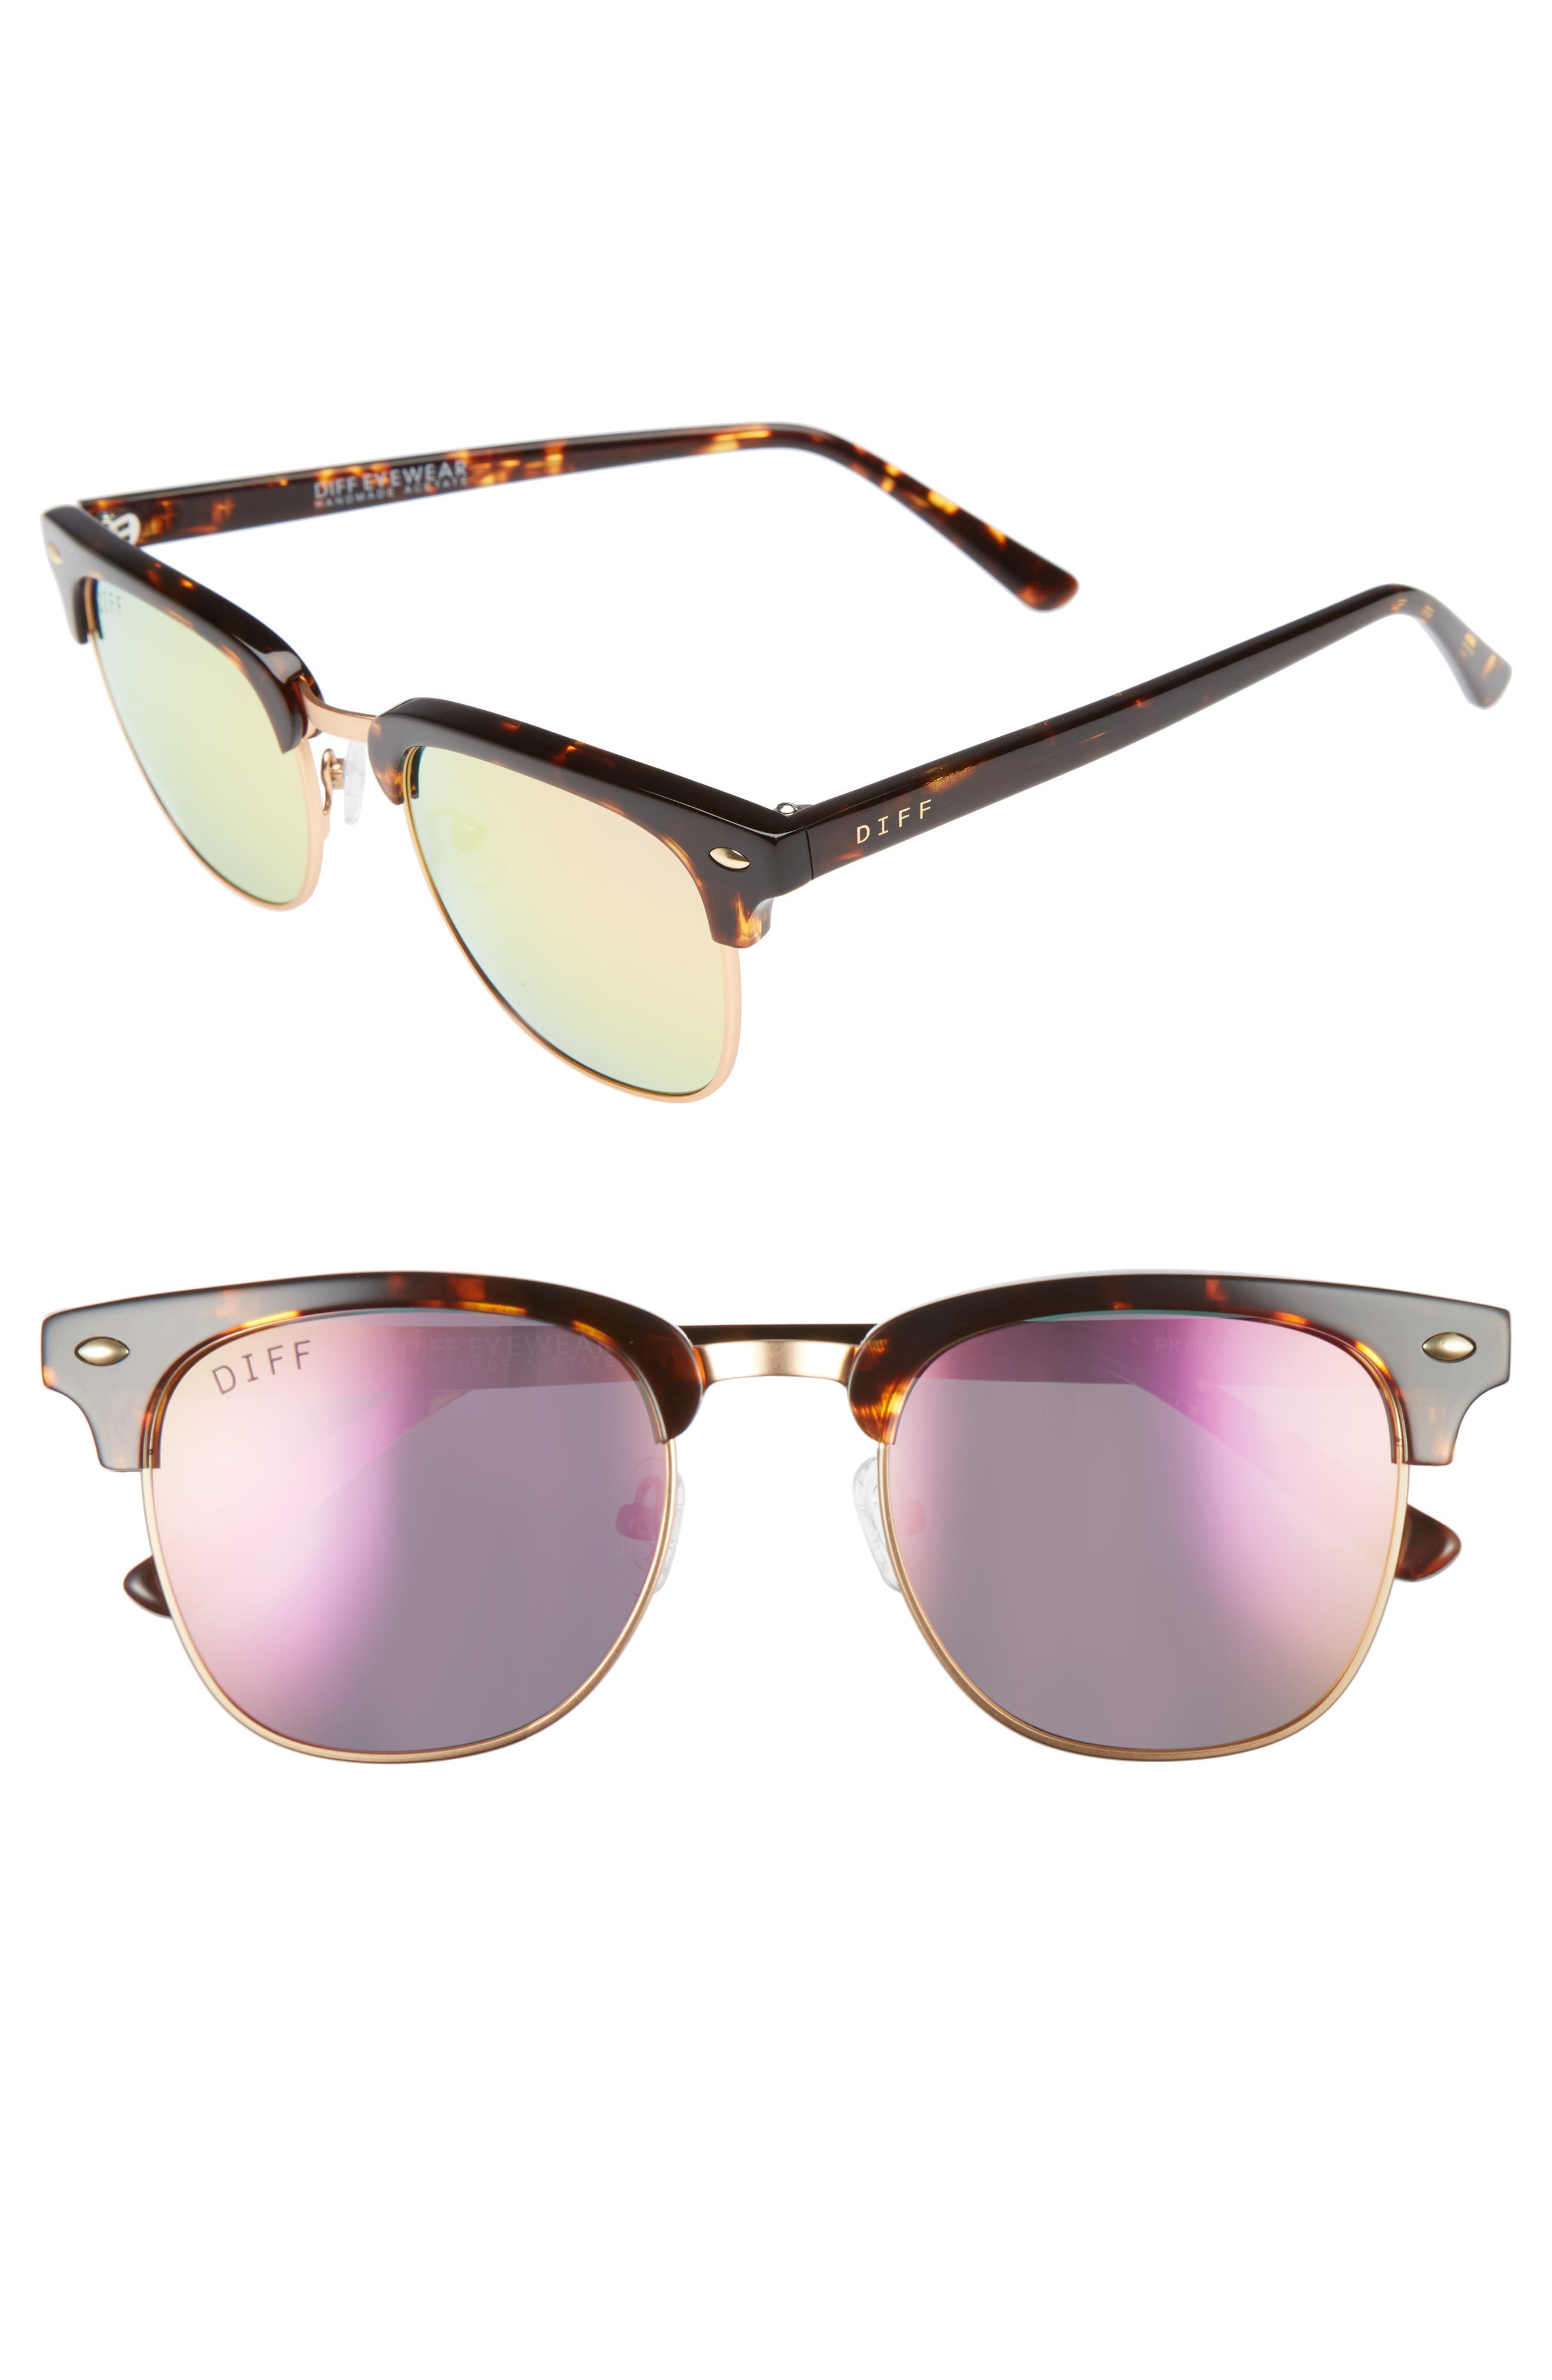 Alternate Image 1 Selected - DIFF Barry 51mm Polarized Retro Sunglasses